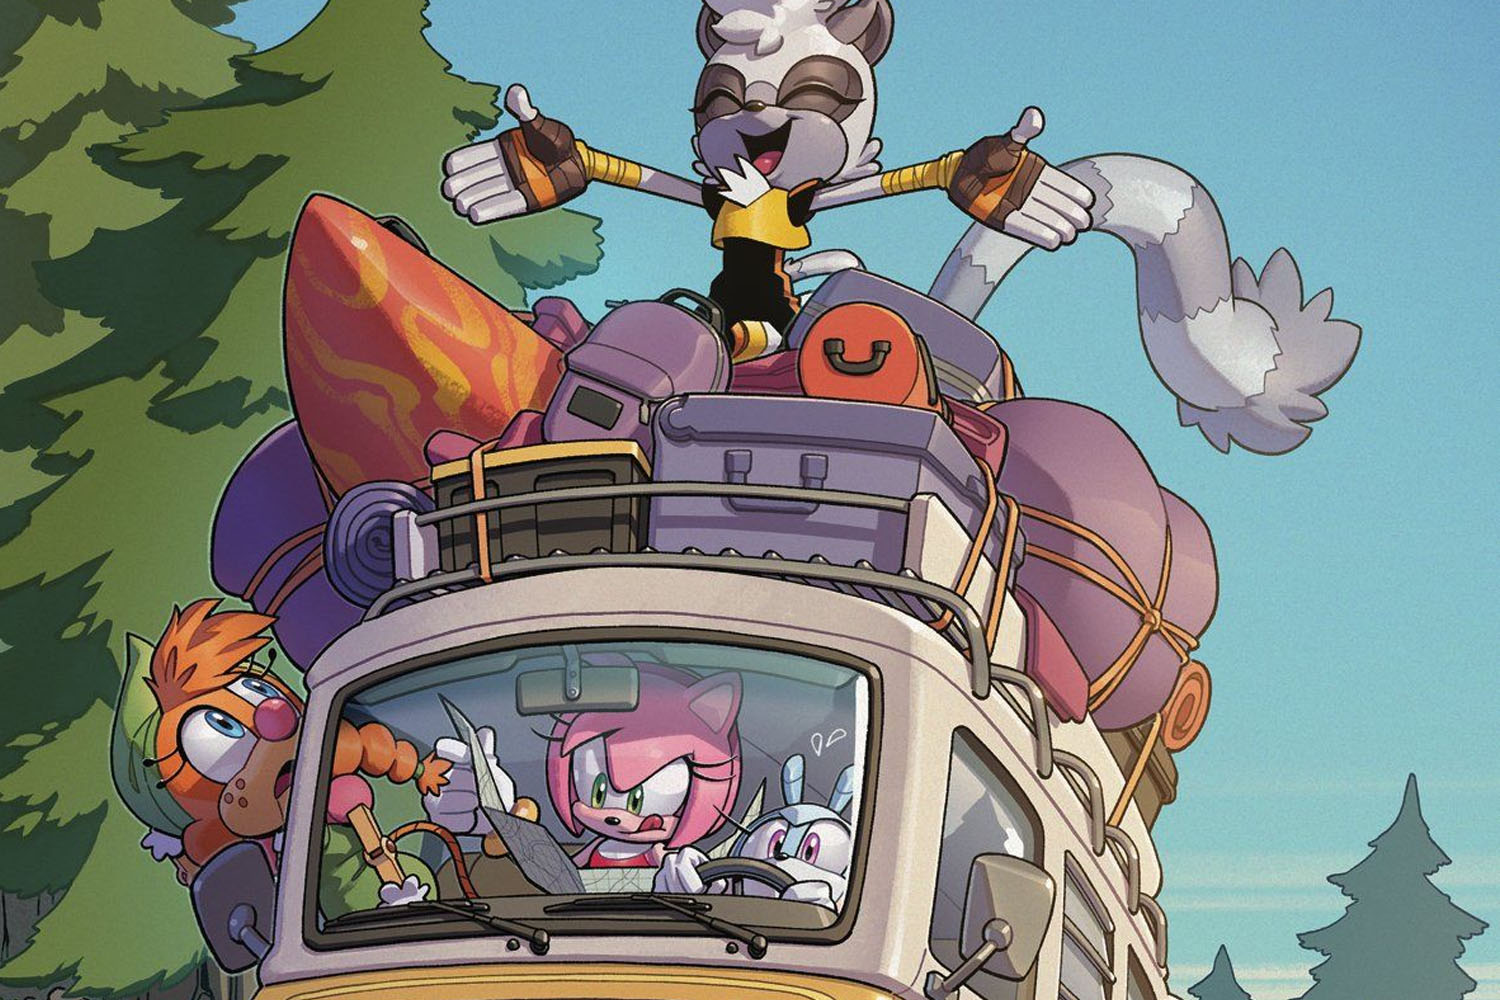 'Sonic the Hedgehog' #45 review